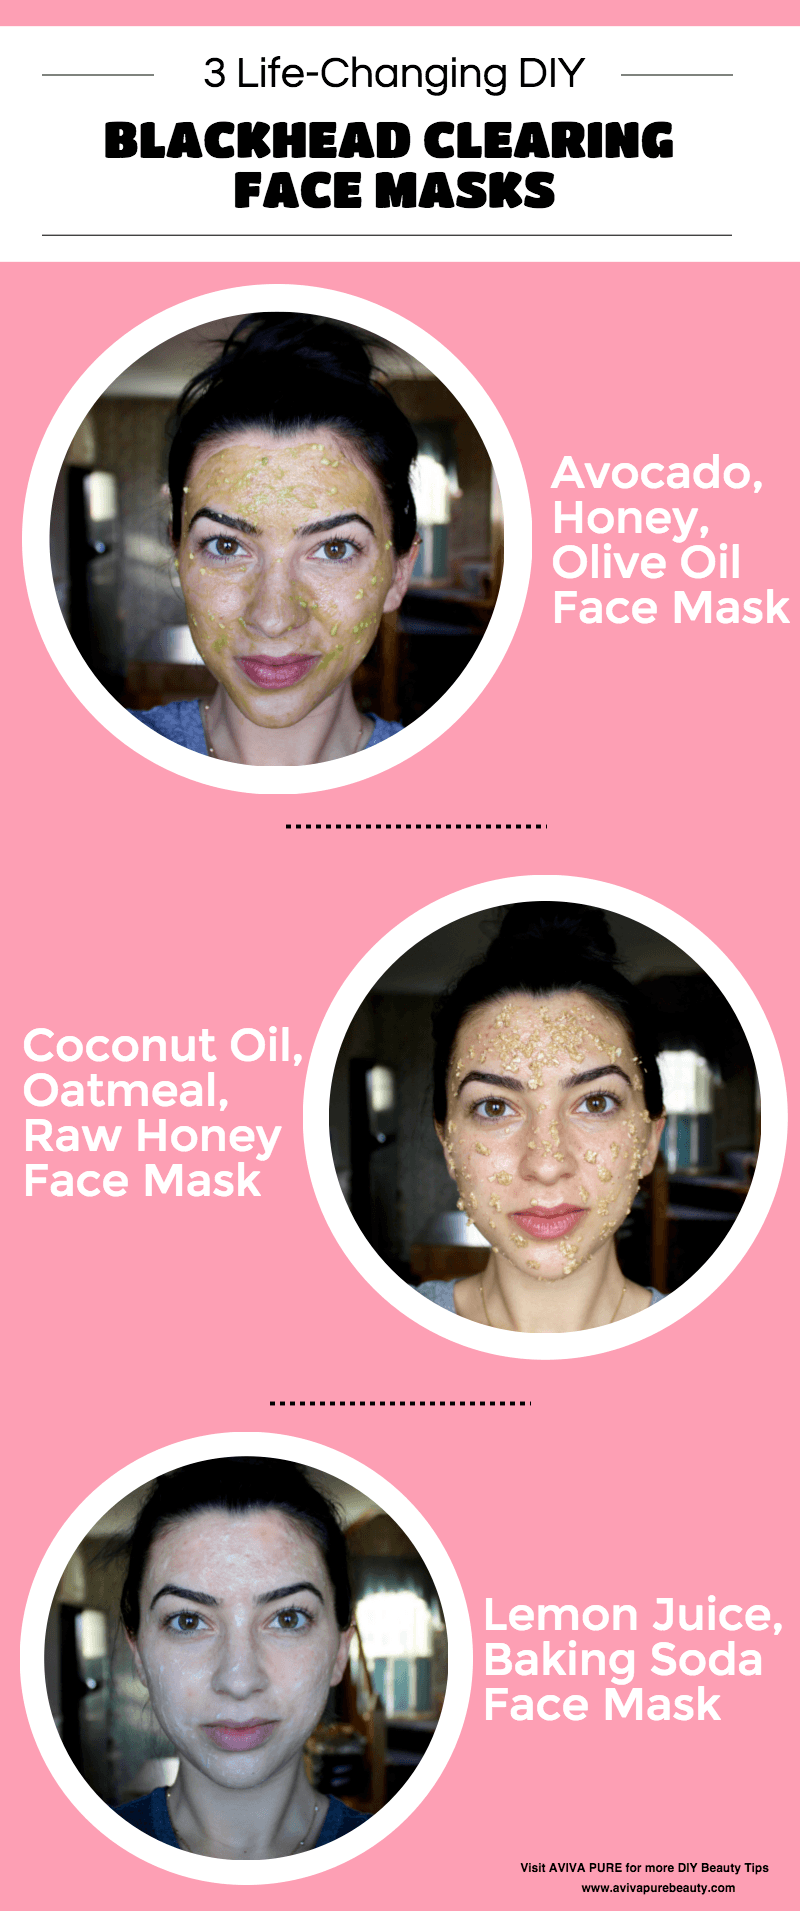 Diy face masks for blackheads natural face masks that work aviva diy blackhead face mask infographic solutioingenieria Image collections